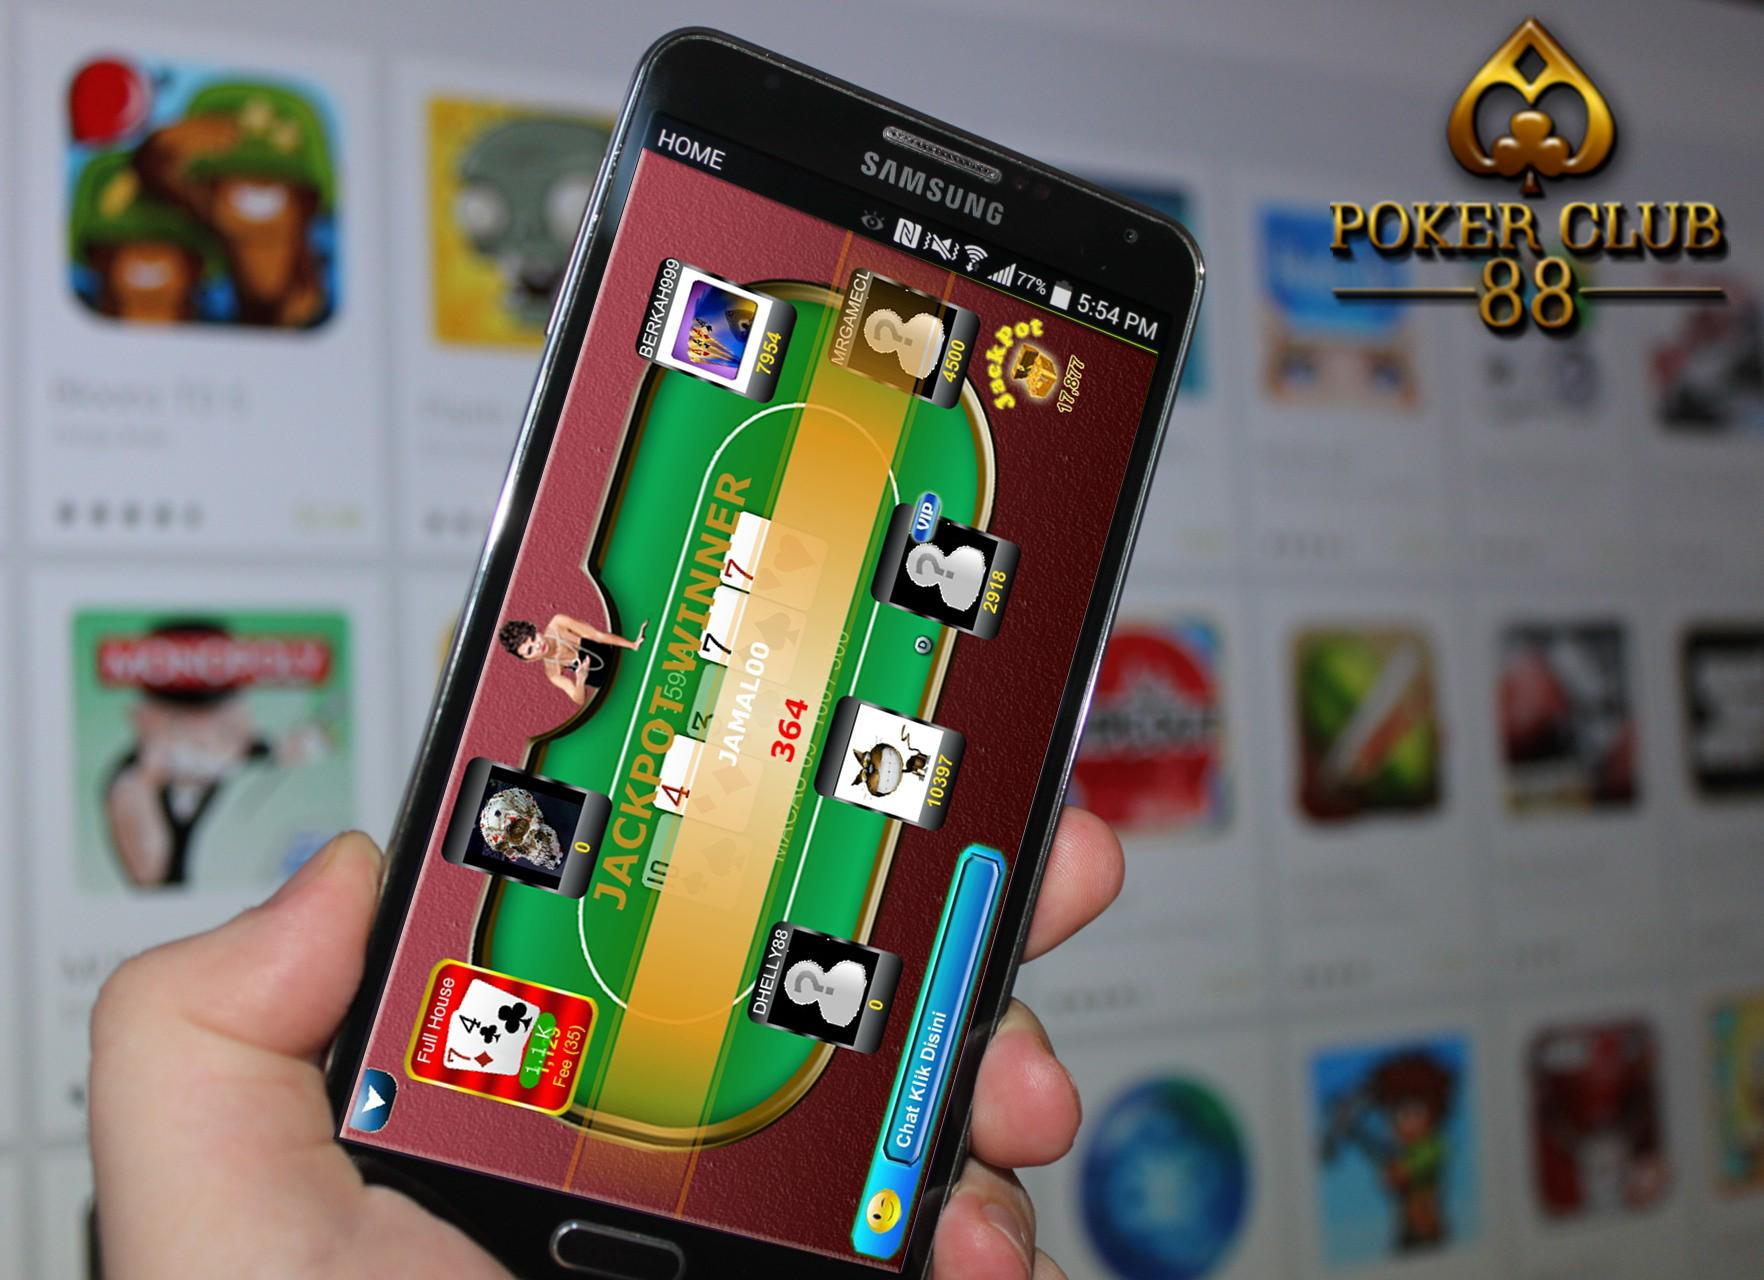 Club88 For Android Apk Download